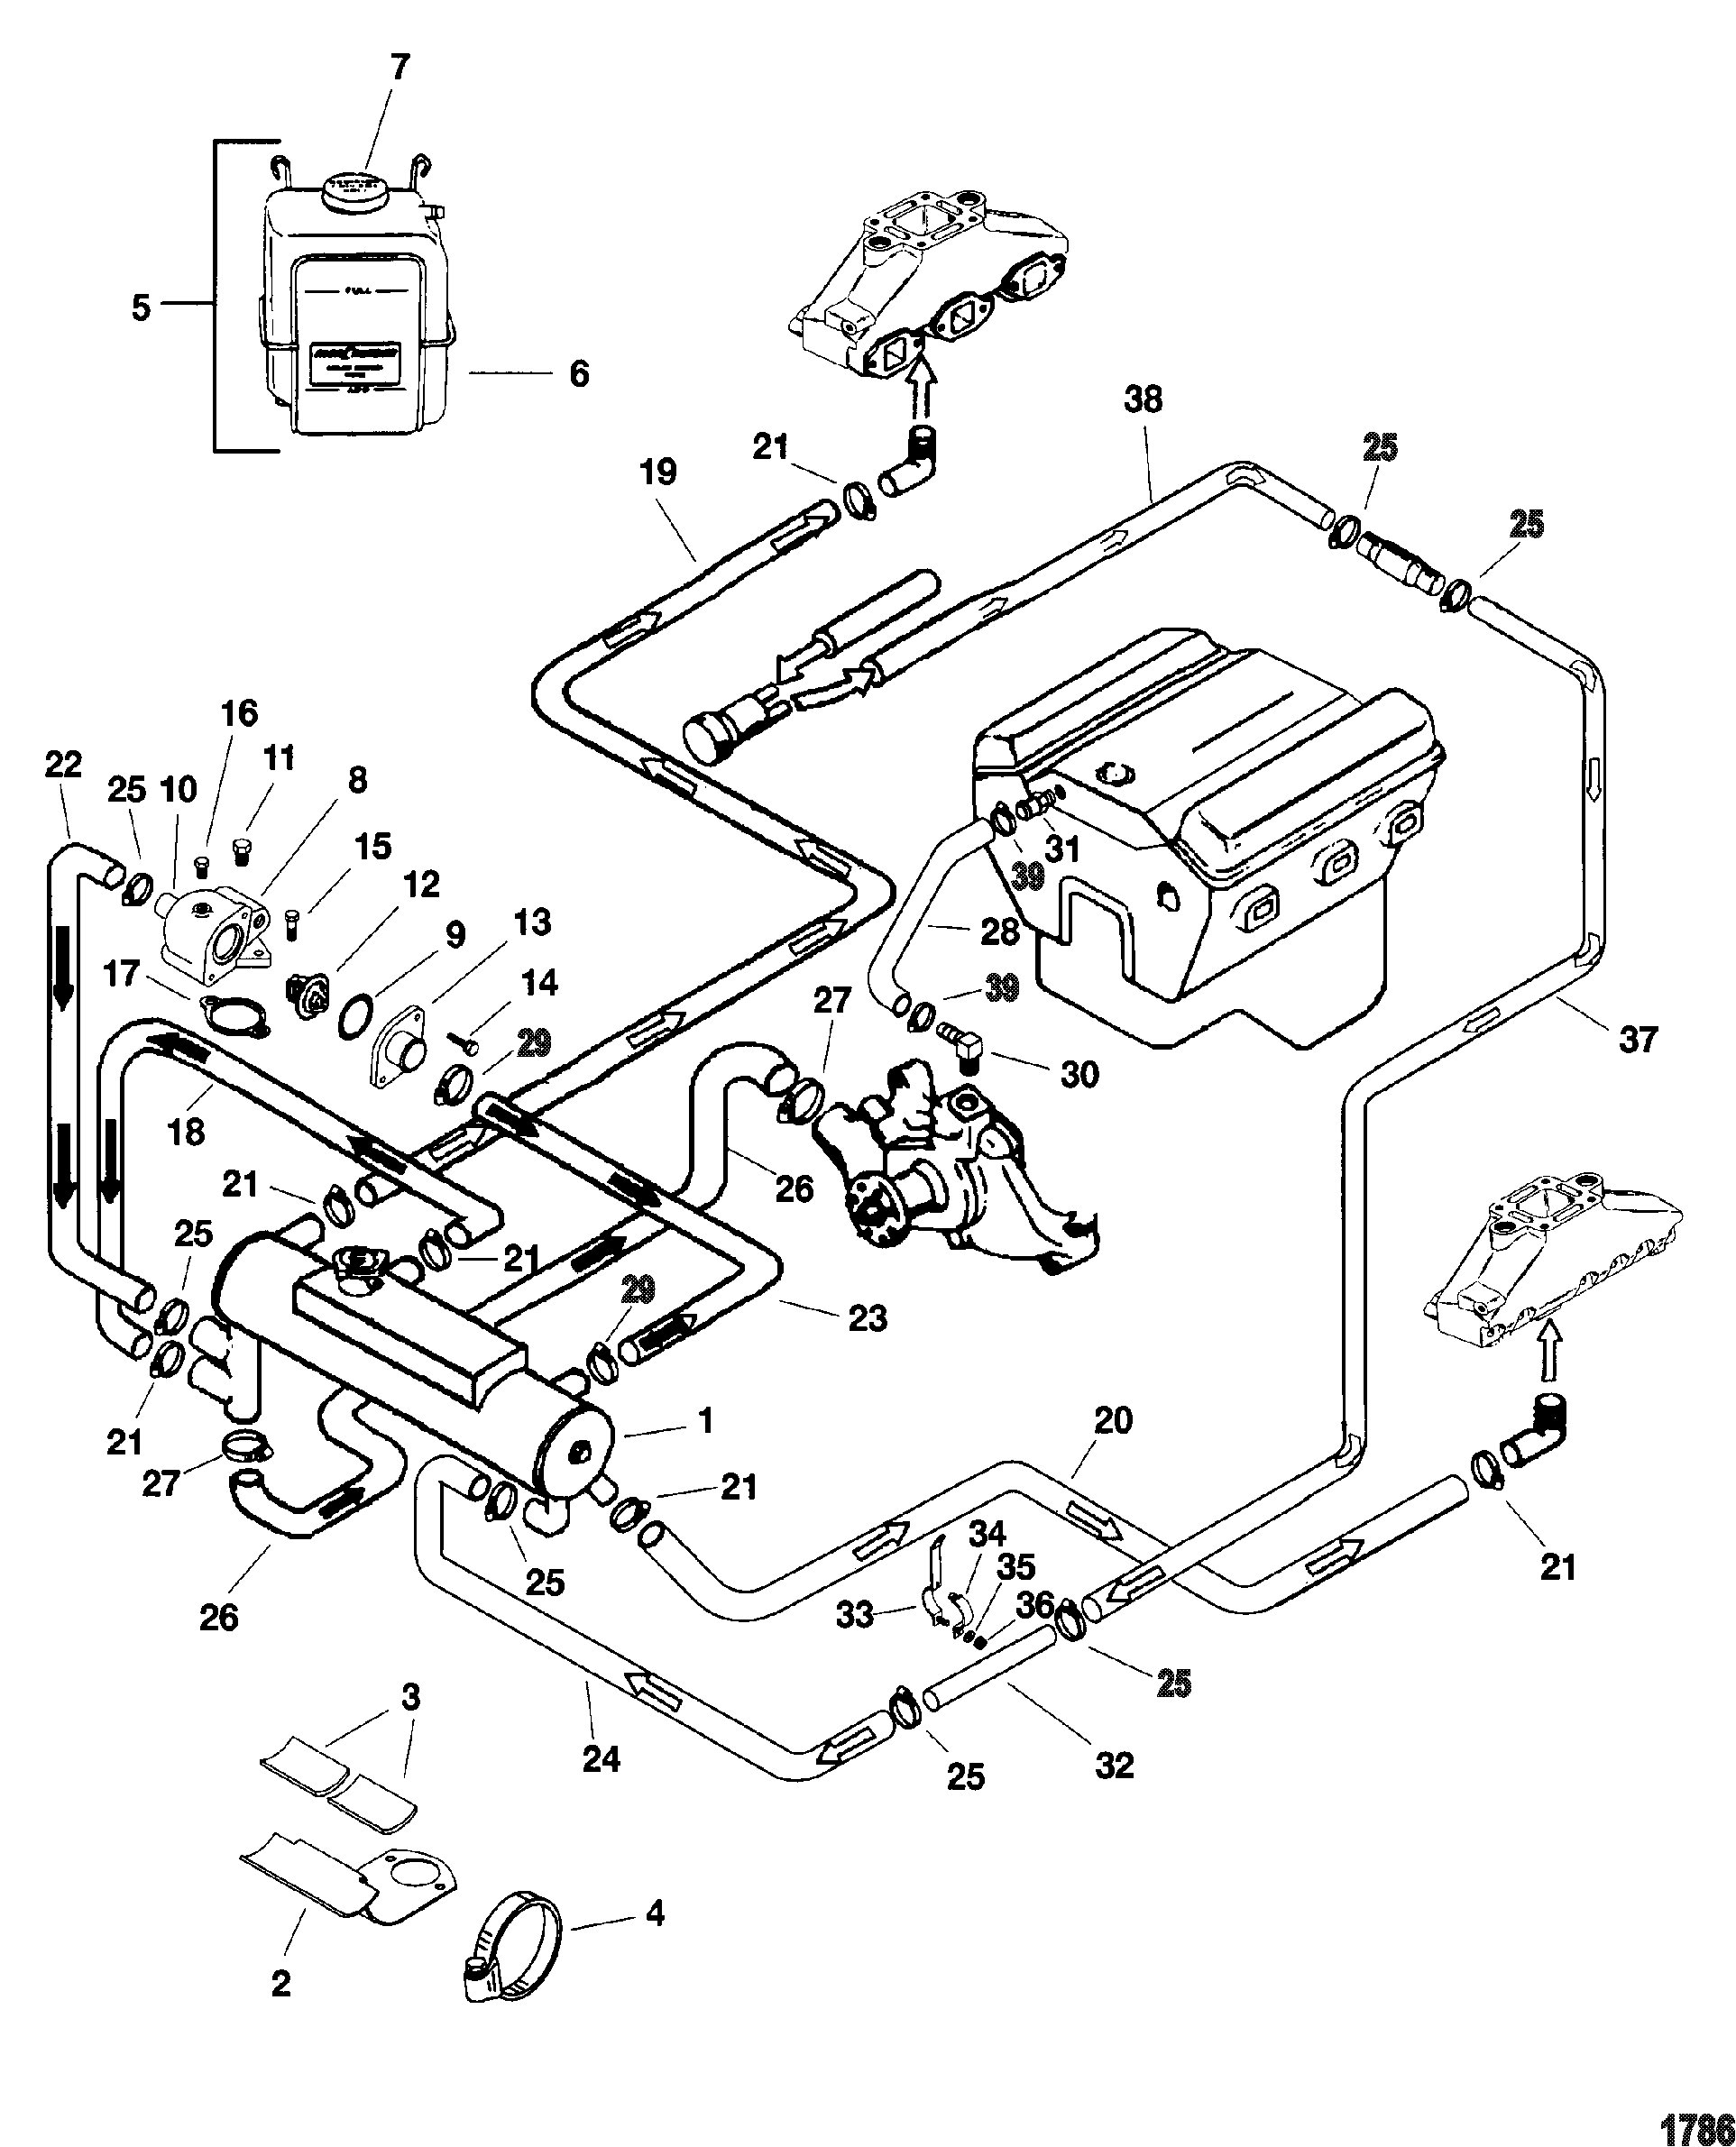 C5 Corvette Turn Signal Flasher Location in addition Chevy Equinox Battery Location further Toyota Corolla 04 Fuse Box additionally 1996 Toyota 4runner Engine Diagram likewise Toyota Camry Ignition System Wiring And Circuit. on 2003 toyota tacoma fuse box diagram